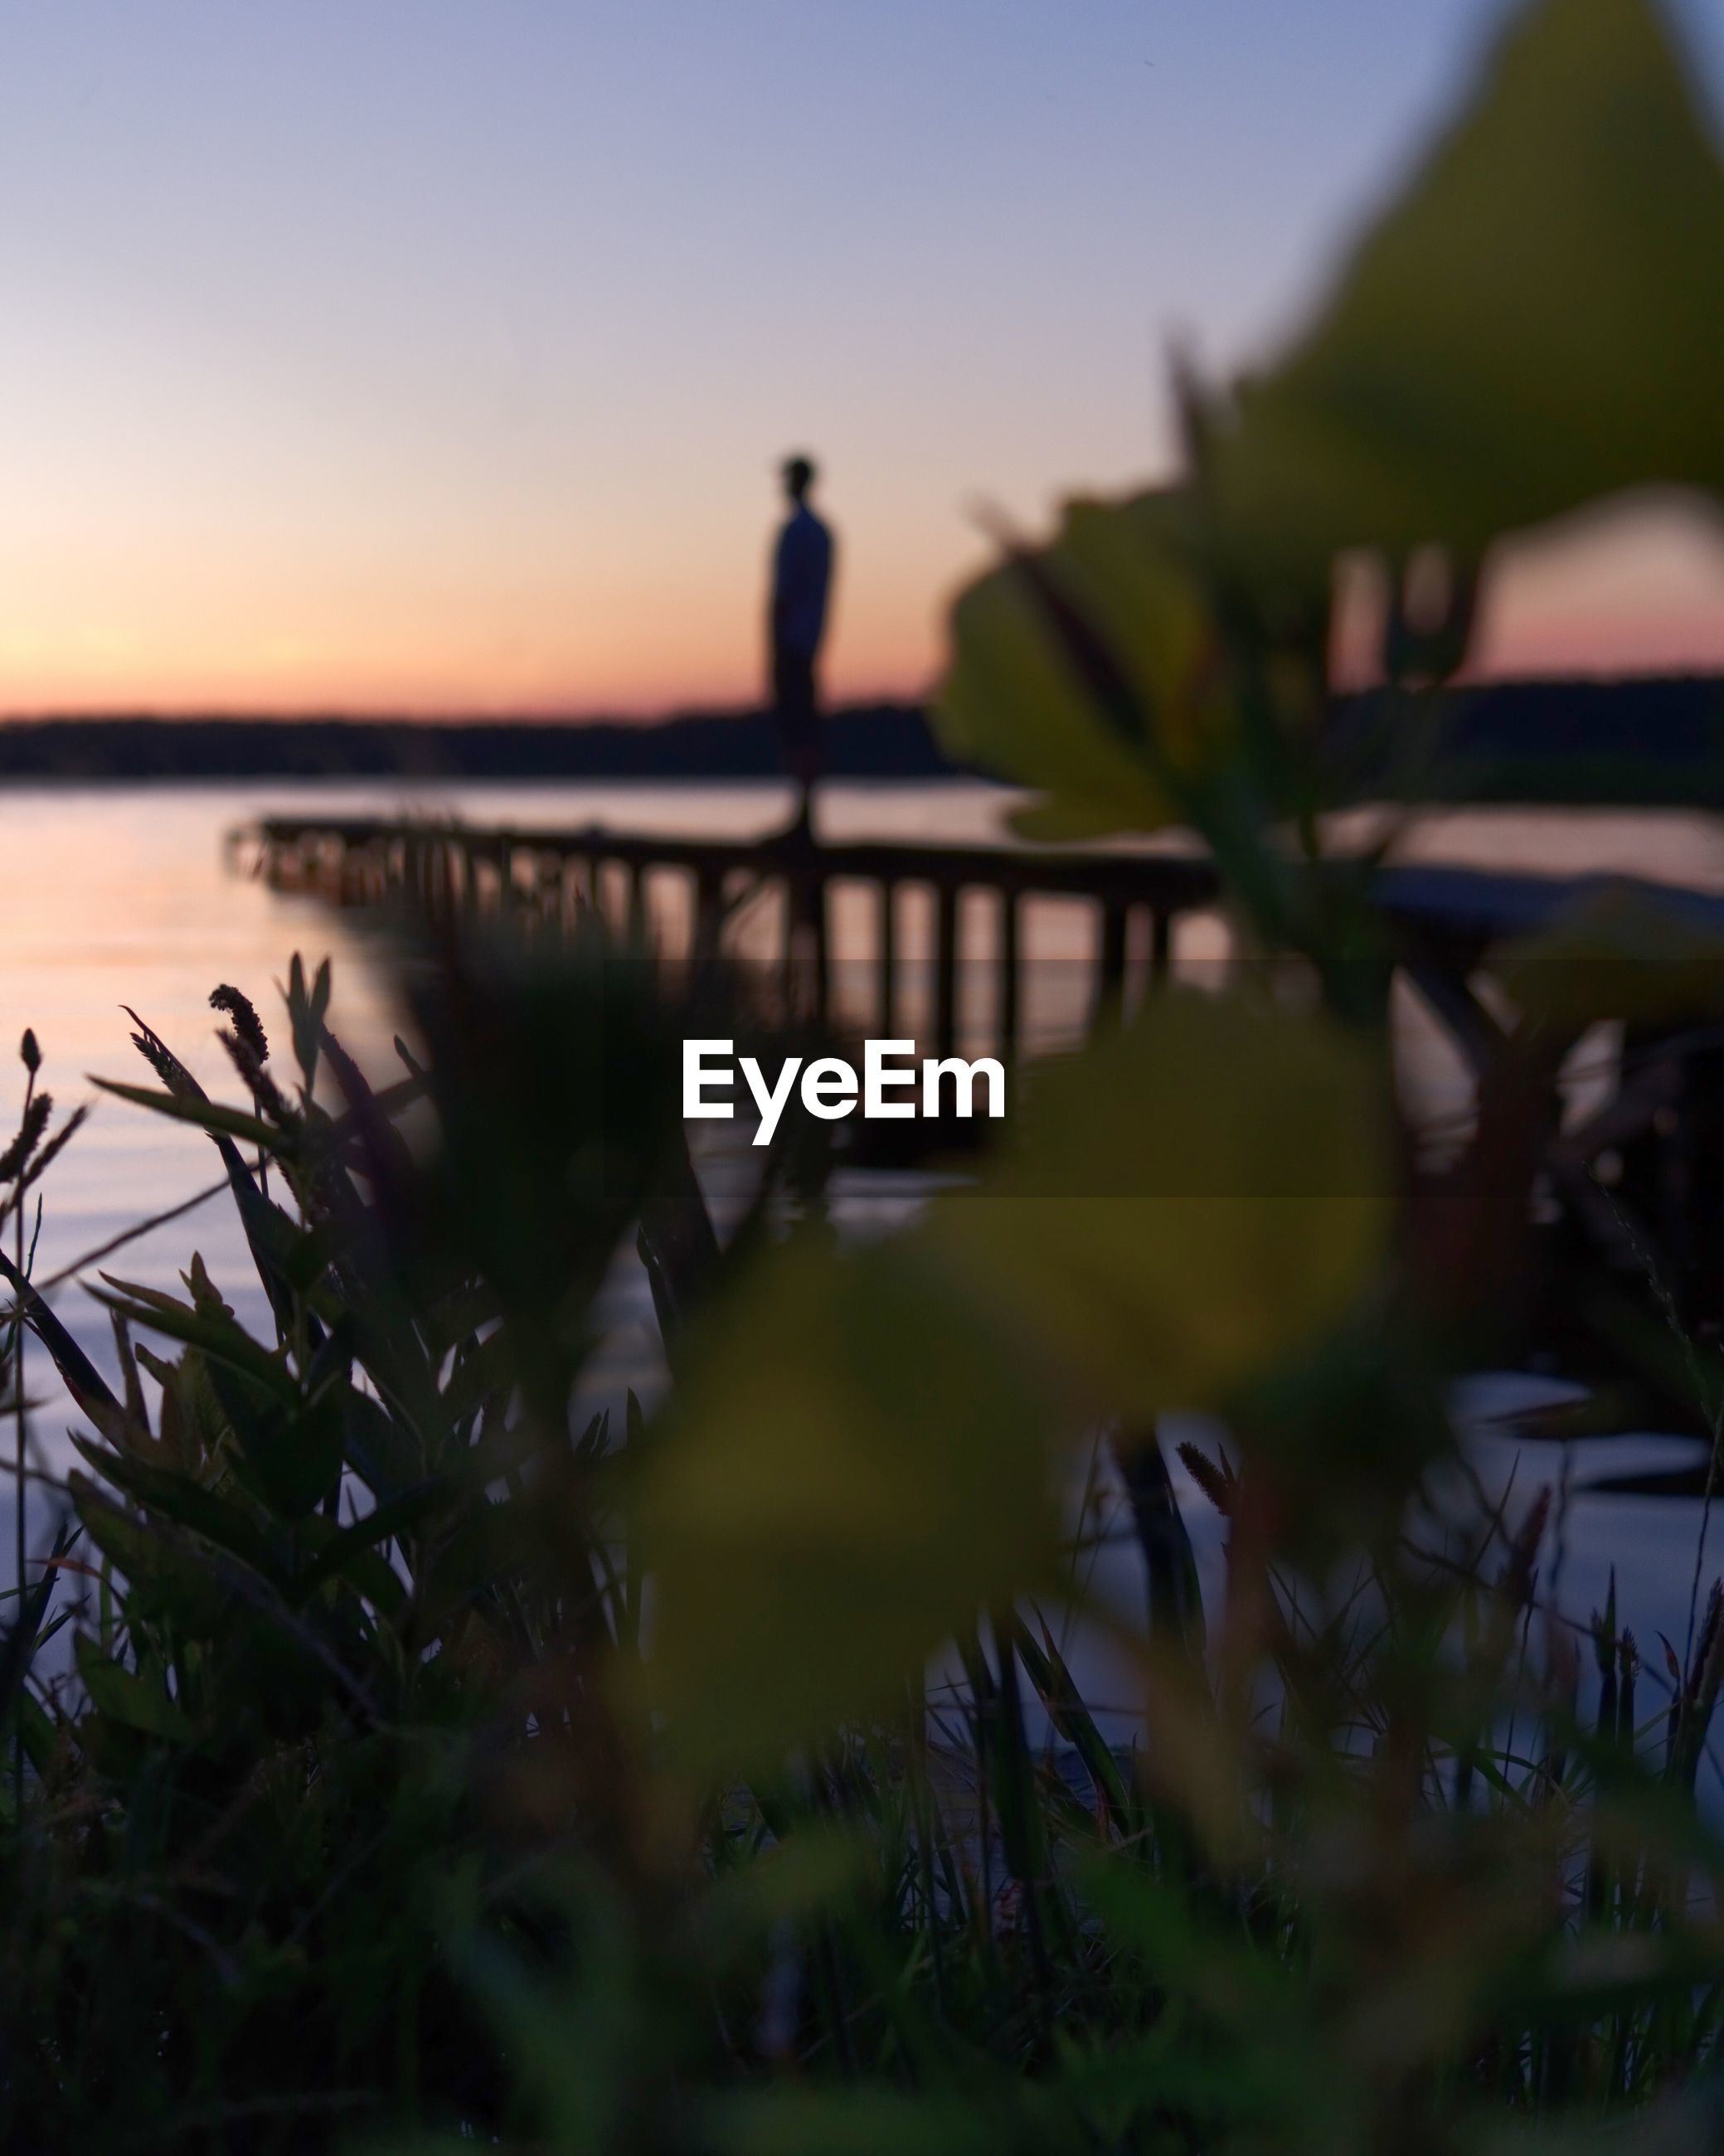 sky, sunset, beauty in nature, selective focus, plant, nature, silhouette, water, real people, scenics - nature, leisure activity, one person, lifestyles, tranquility, sea, tranquil scene, standing, outdoors